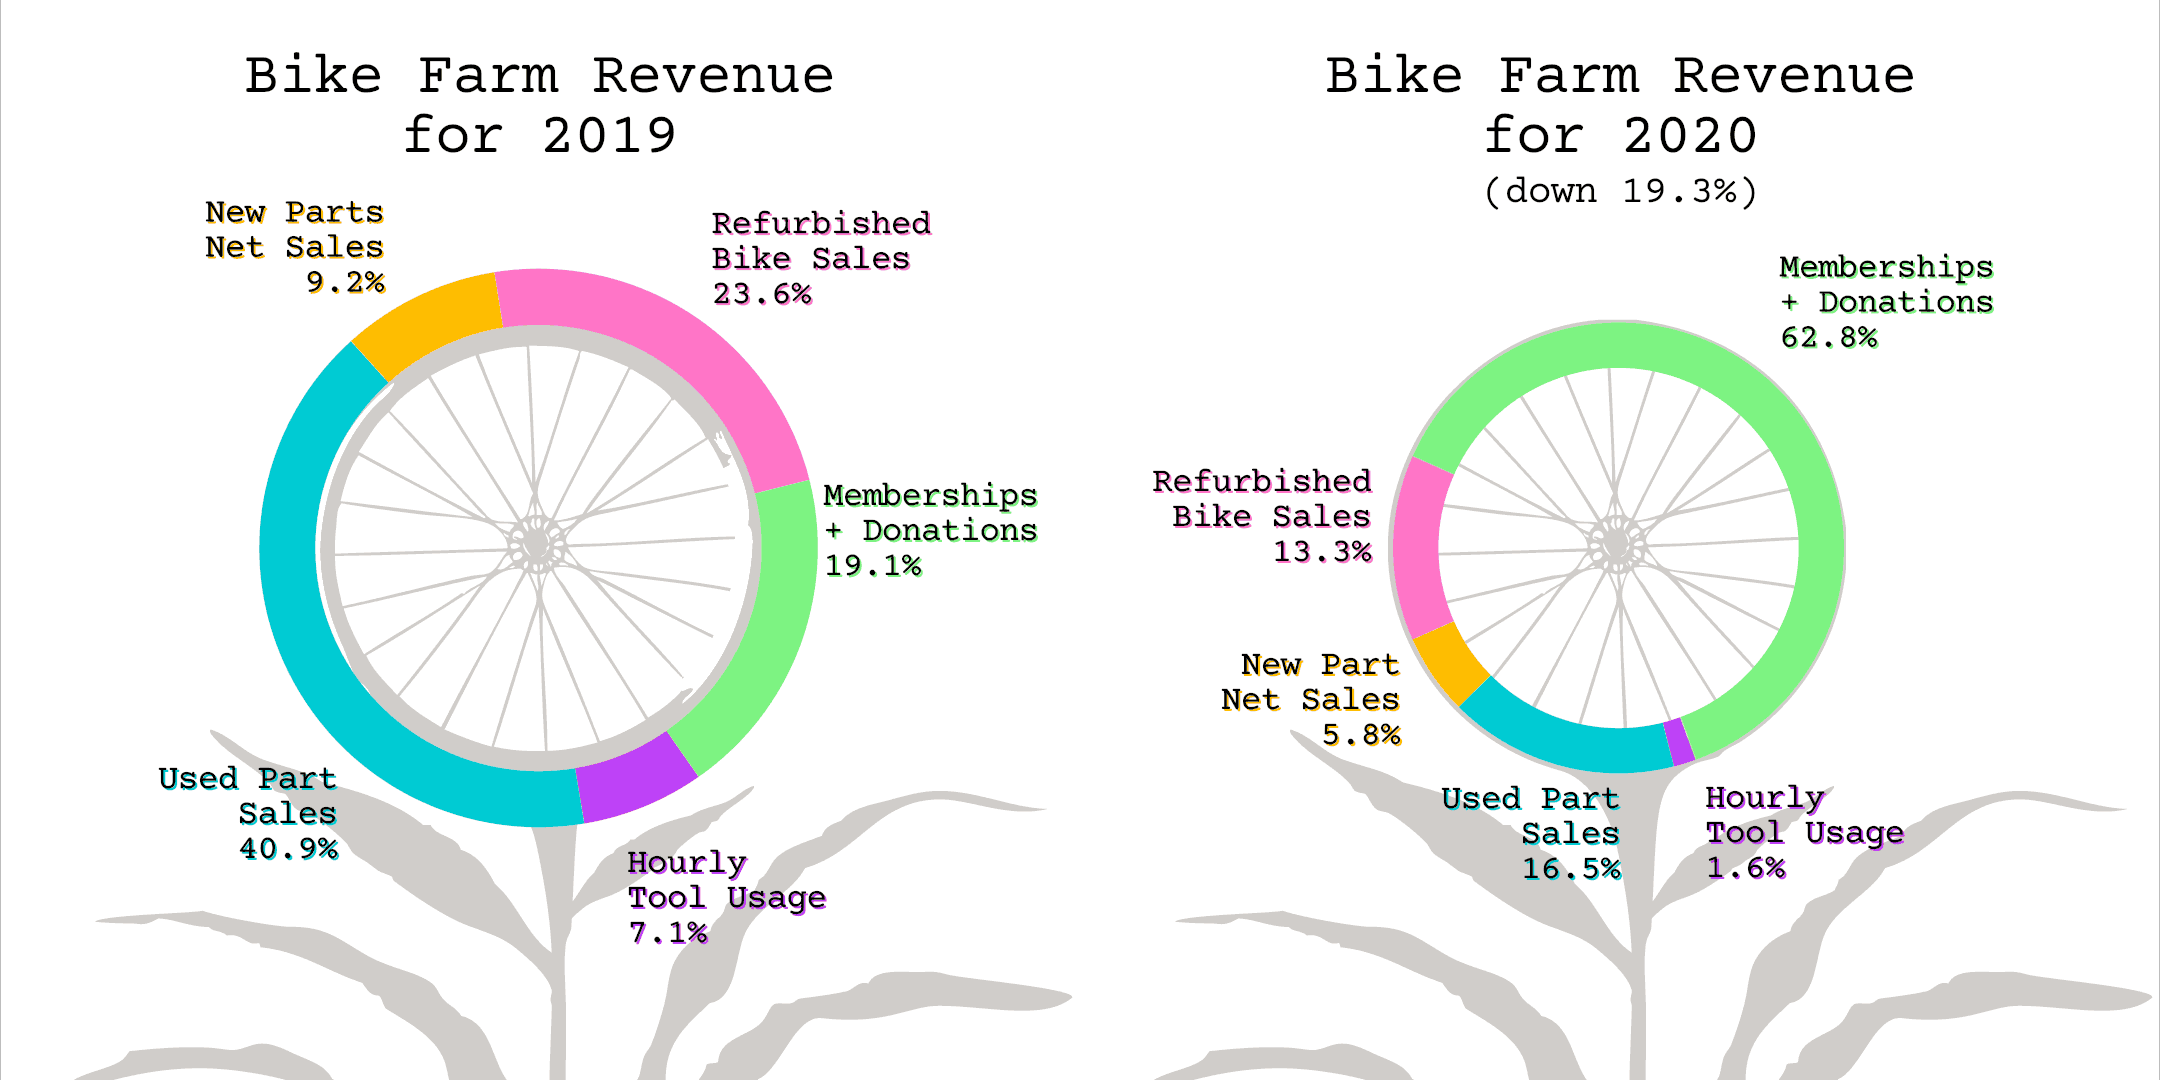 Bike Farm Revenue for 2019: Hourly Tool Usage 7.1%, Used Part Sales 40.9%, New Parts Net Sales 9.2%, Refurbished Bike Sales 23.6%, Memberships + Donations 19.1%. Bike Farm Revenue for 2020 (down 19.3%): Hourly Tool Usage 1.6%, Used Part Sales 16.5%, New Parts Net Sales 5.8%, Refurbished Bike Sales 13.3%, Memberships + Donations 62.8%